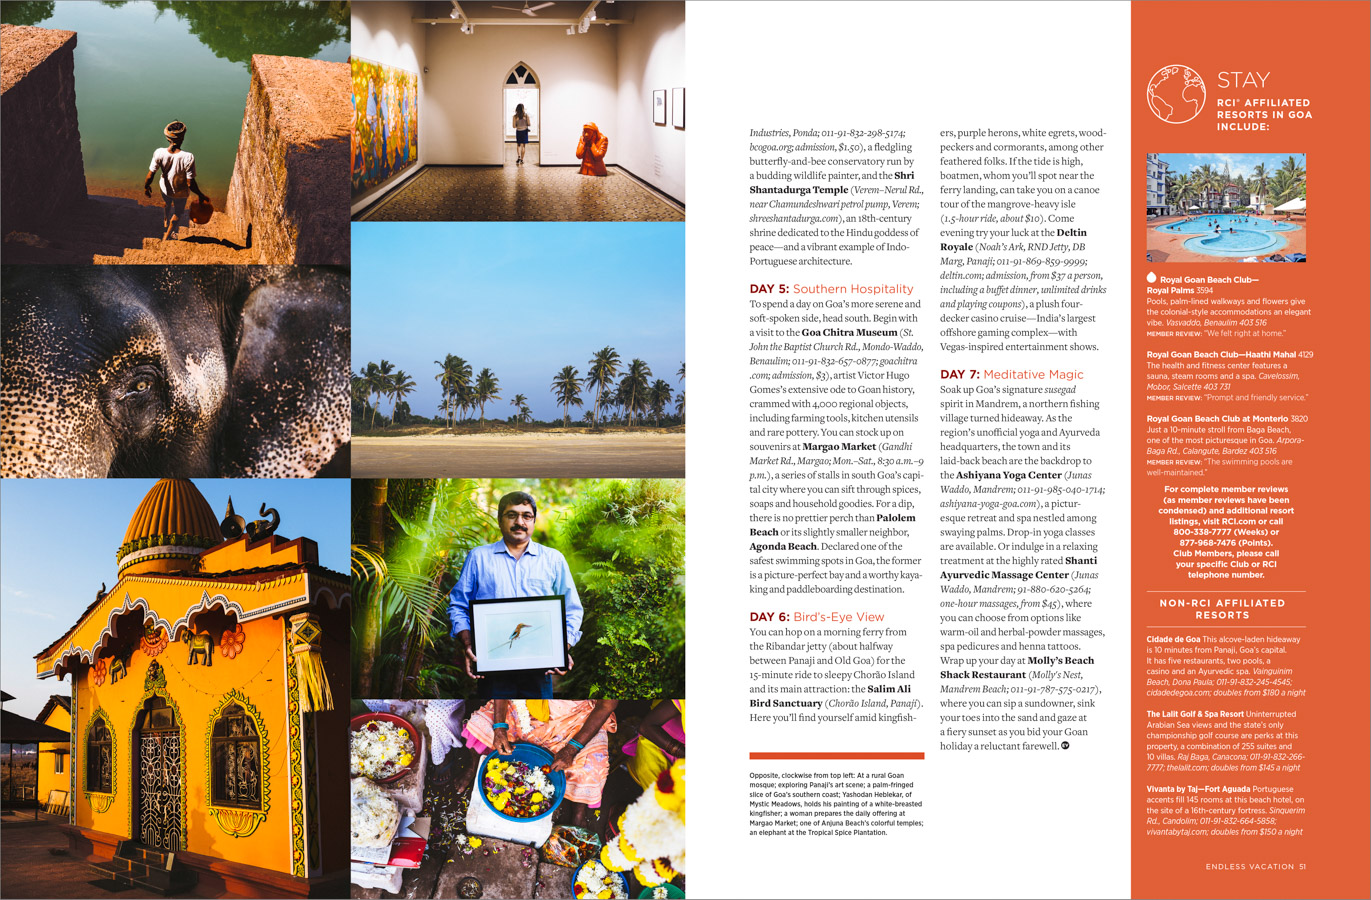 A travel feature spanning the Indian state of Goa for Endless Vacation magazine.